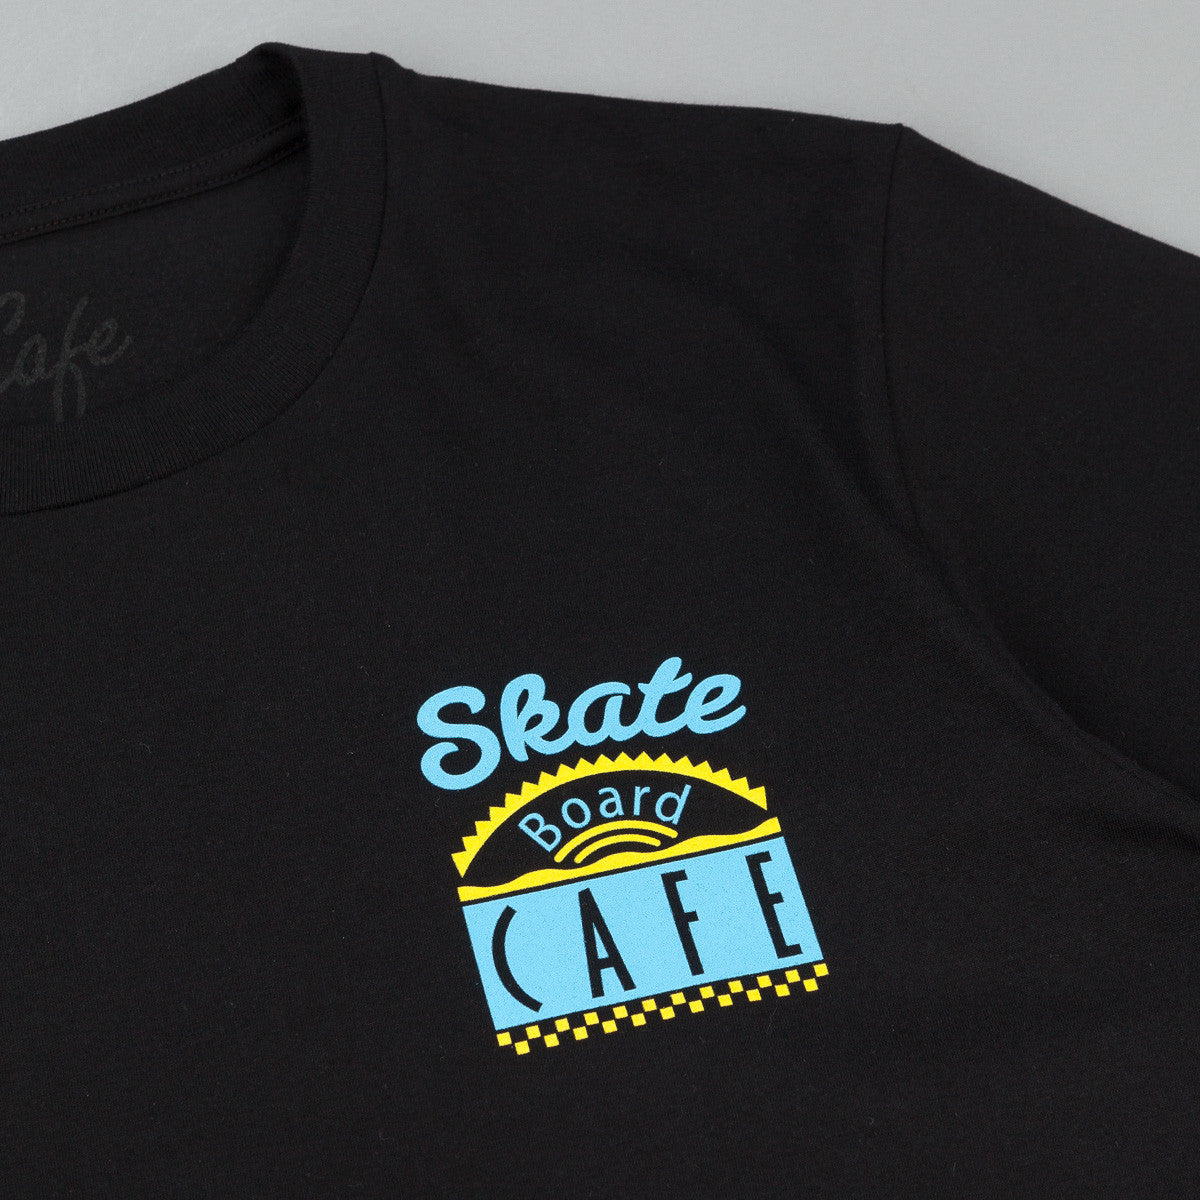 Skateboard Cafe Diner T-Shirt - Black / Blue / Yellow